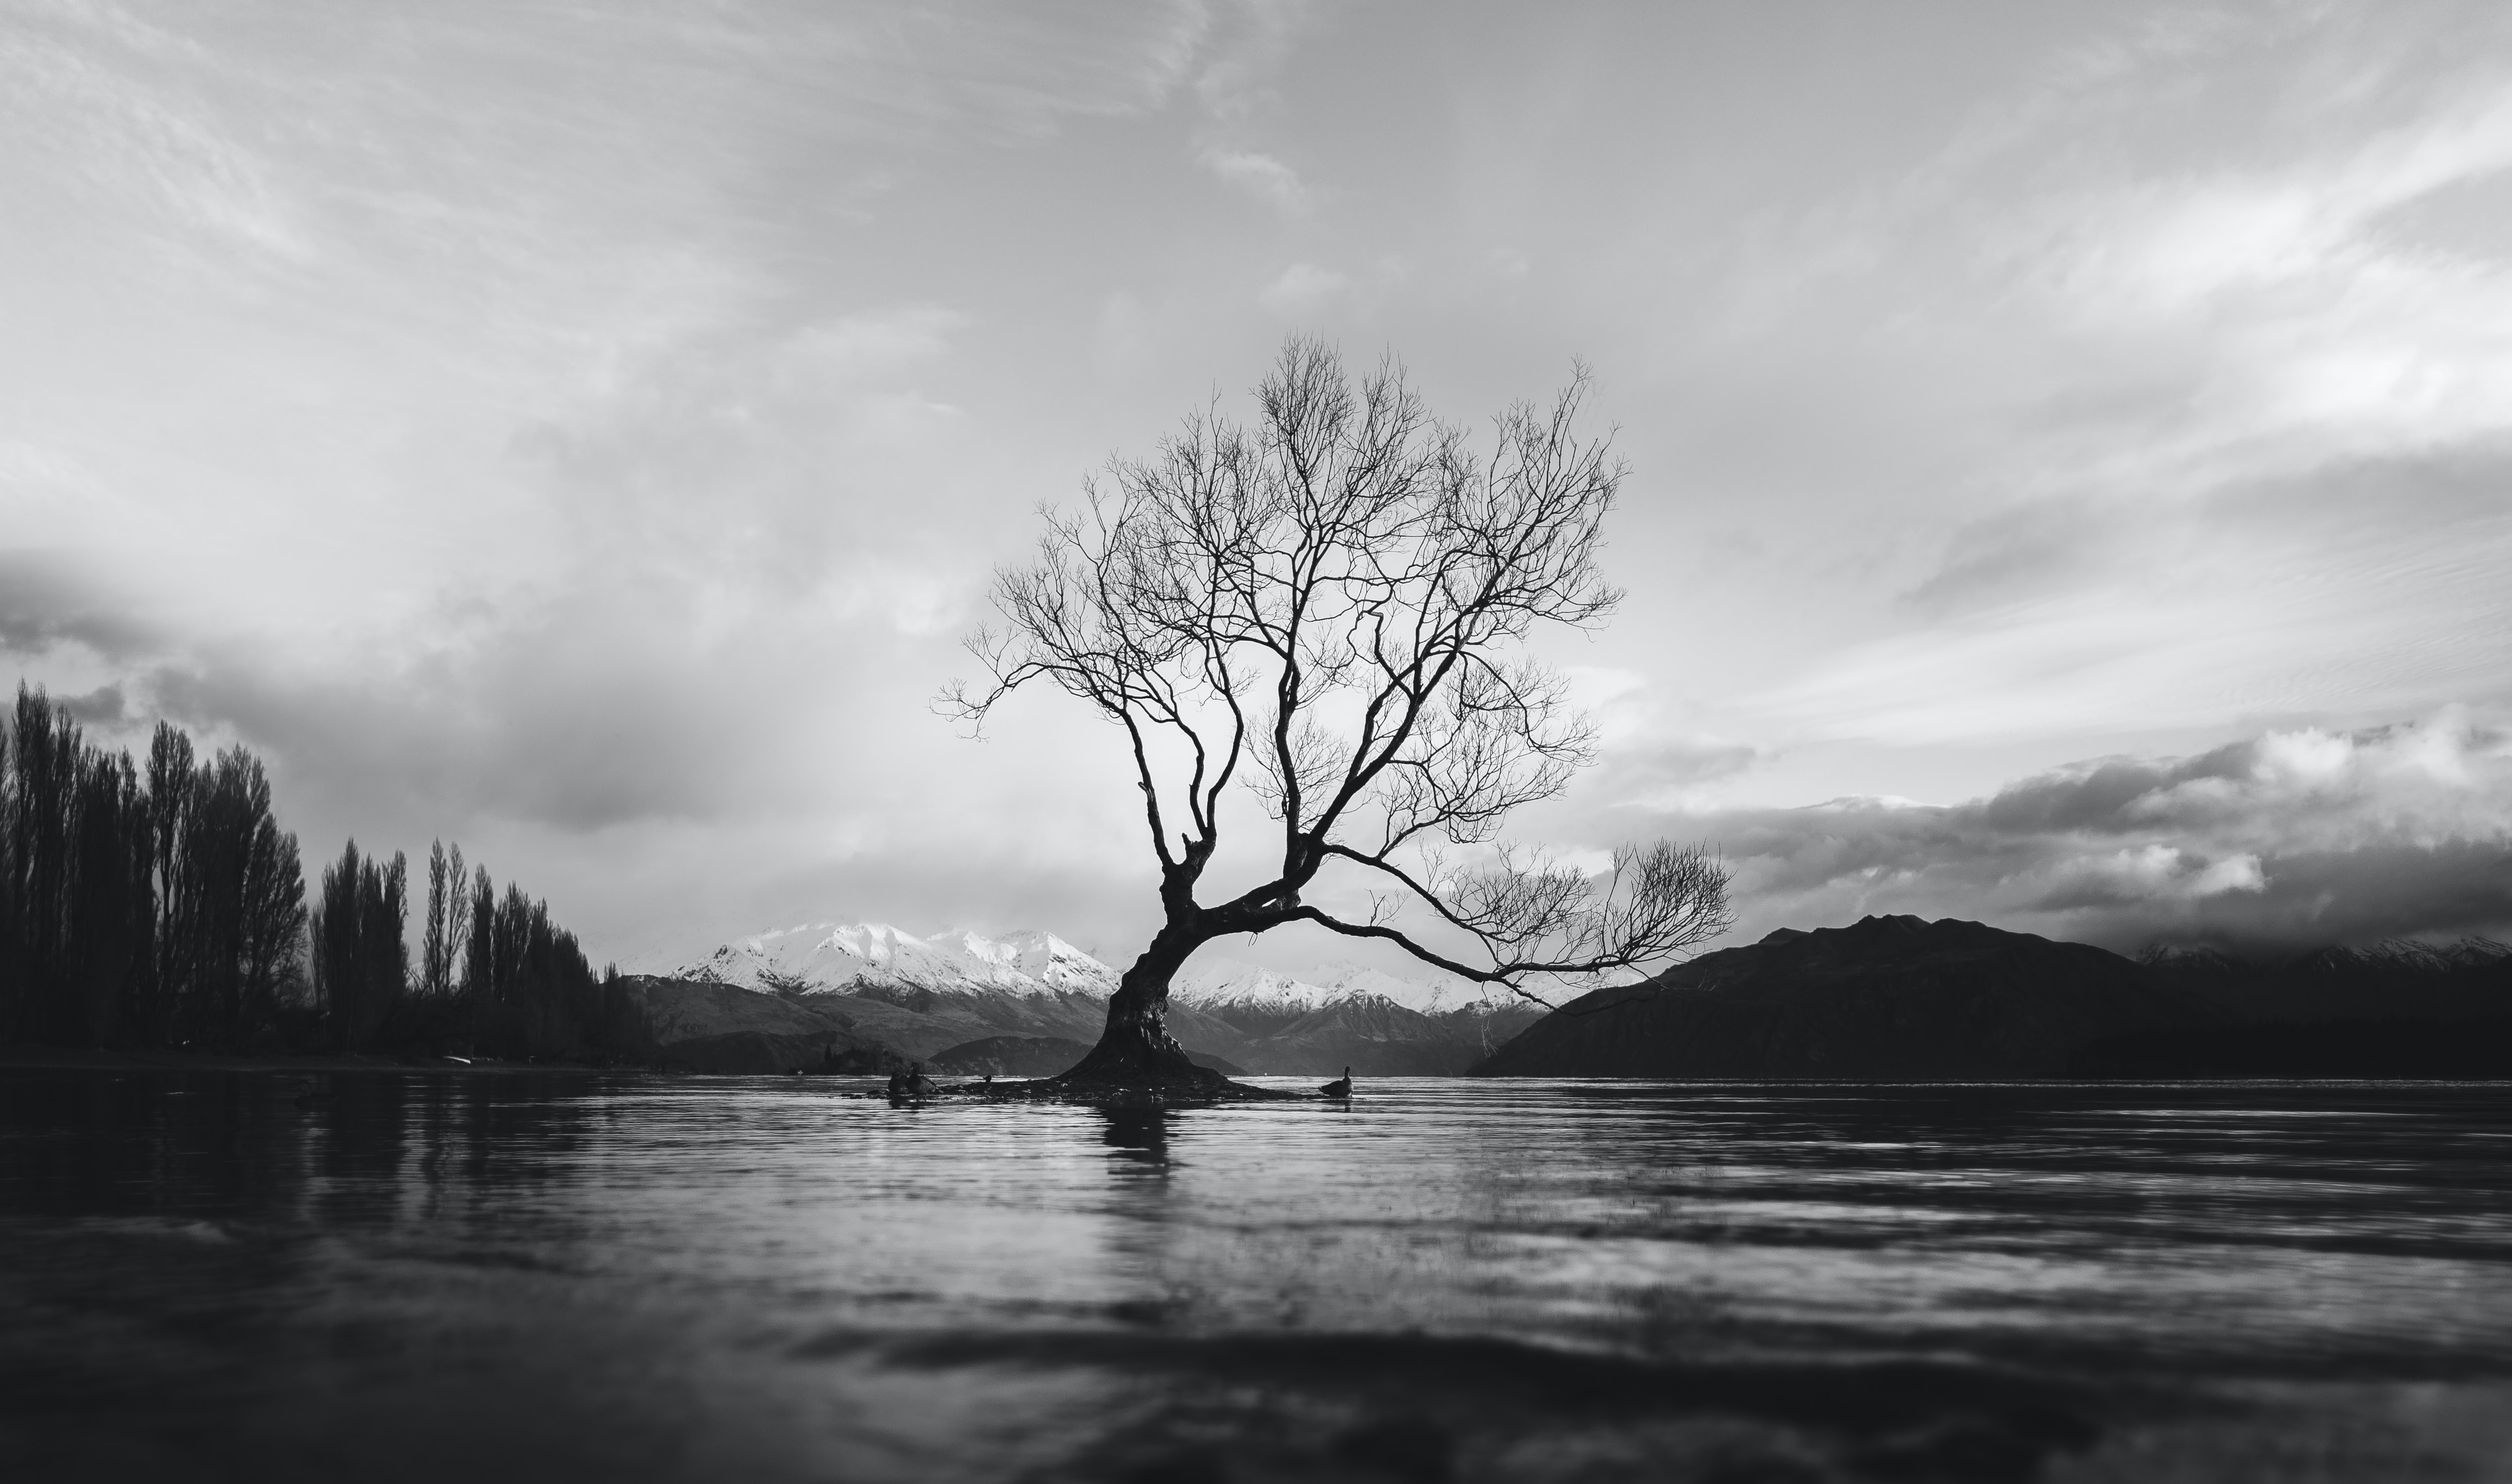 grayscale photo of bare tree on calm body of water